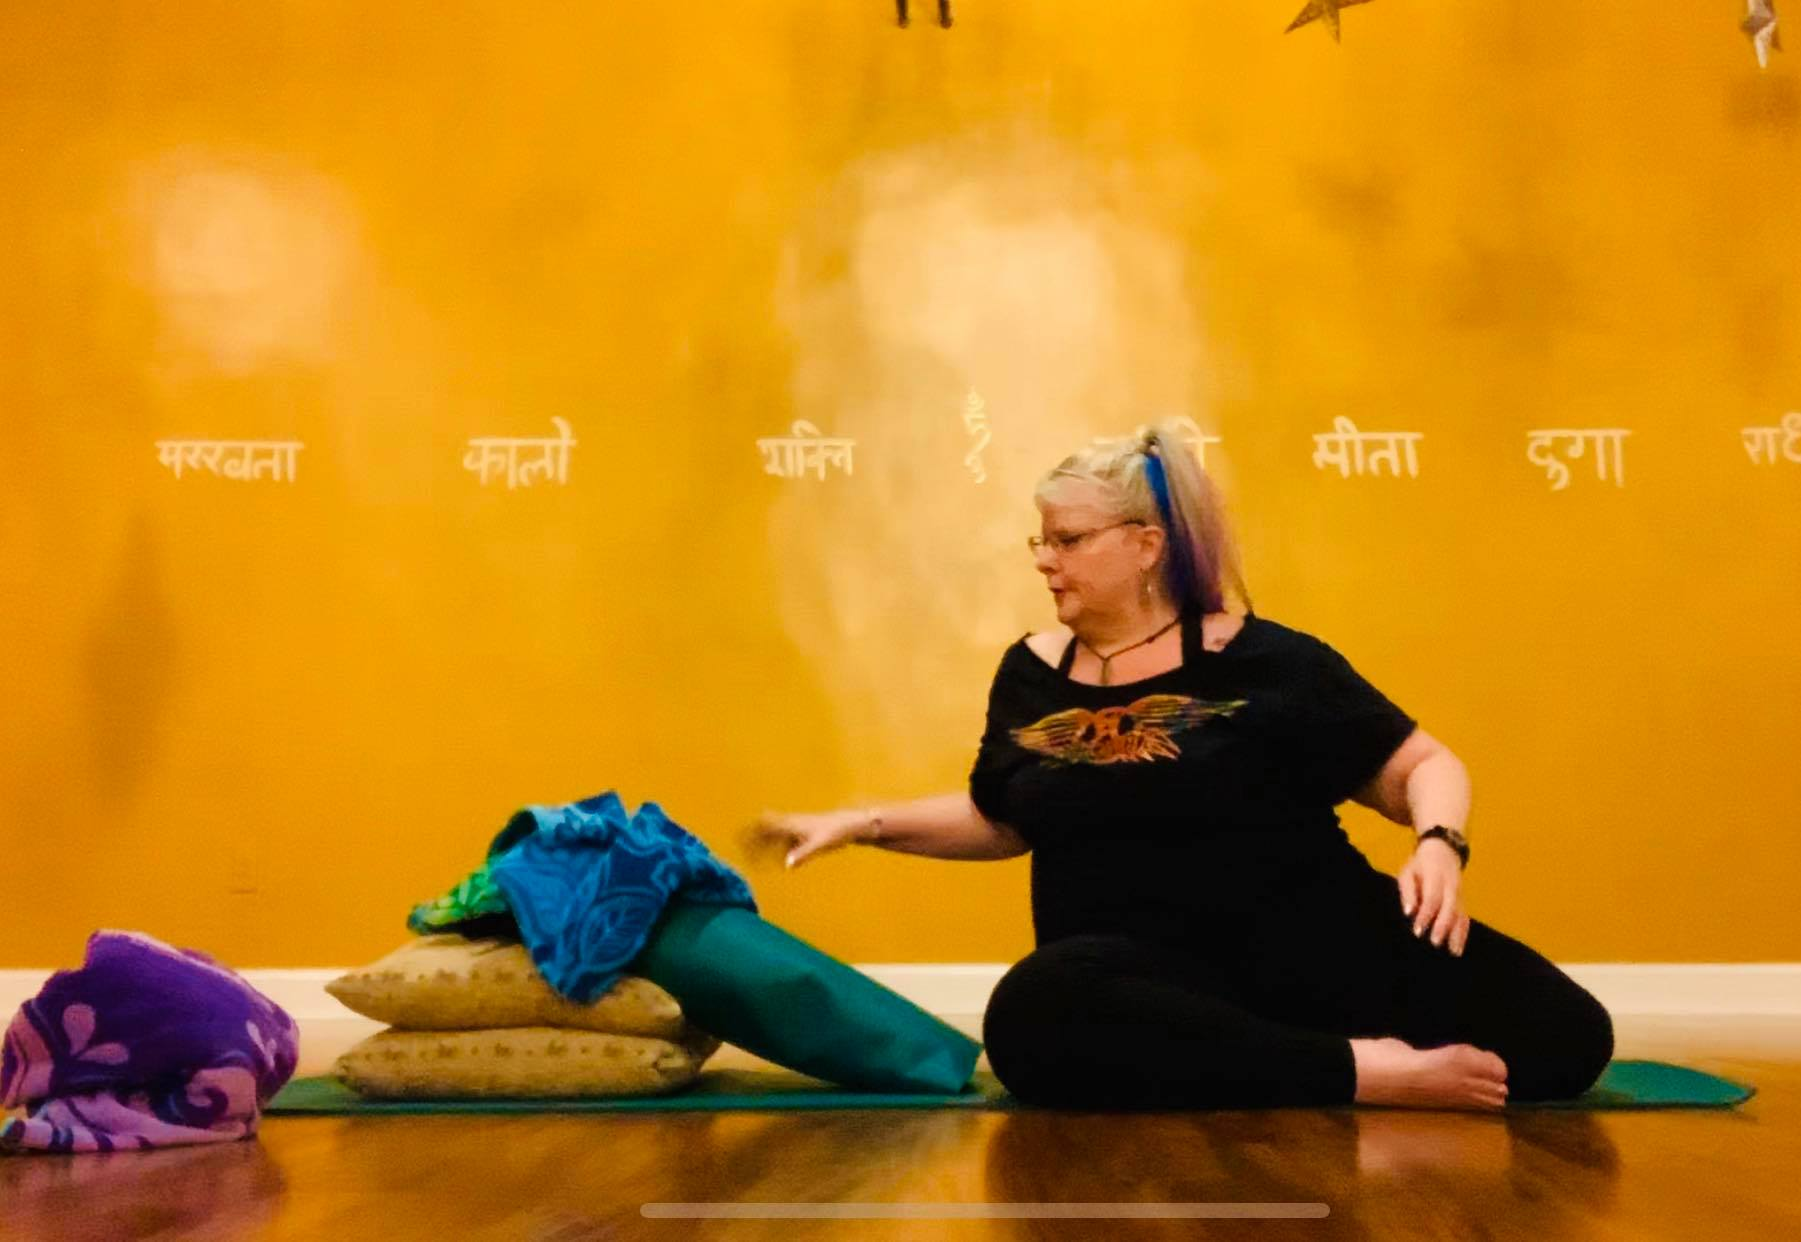 Restorative Yoga with Household Props (34:30)